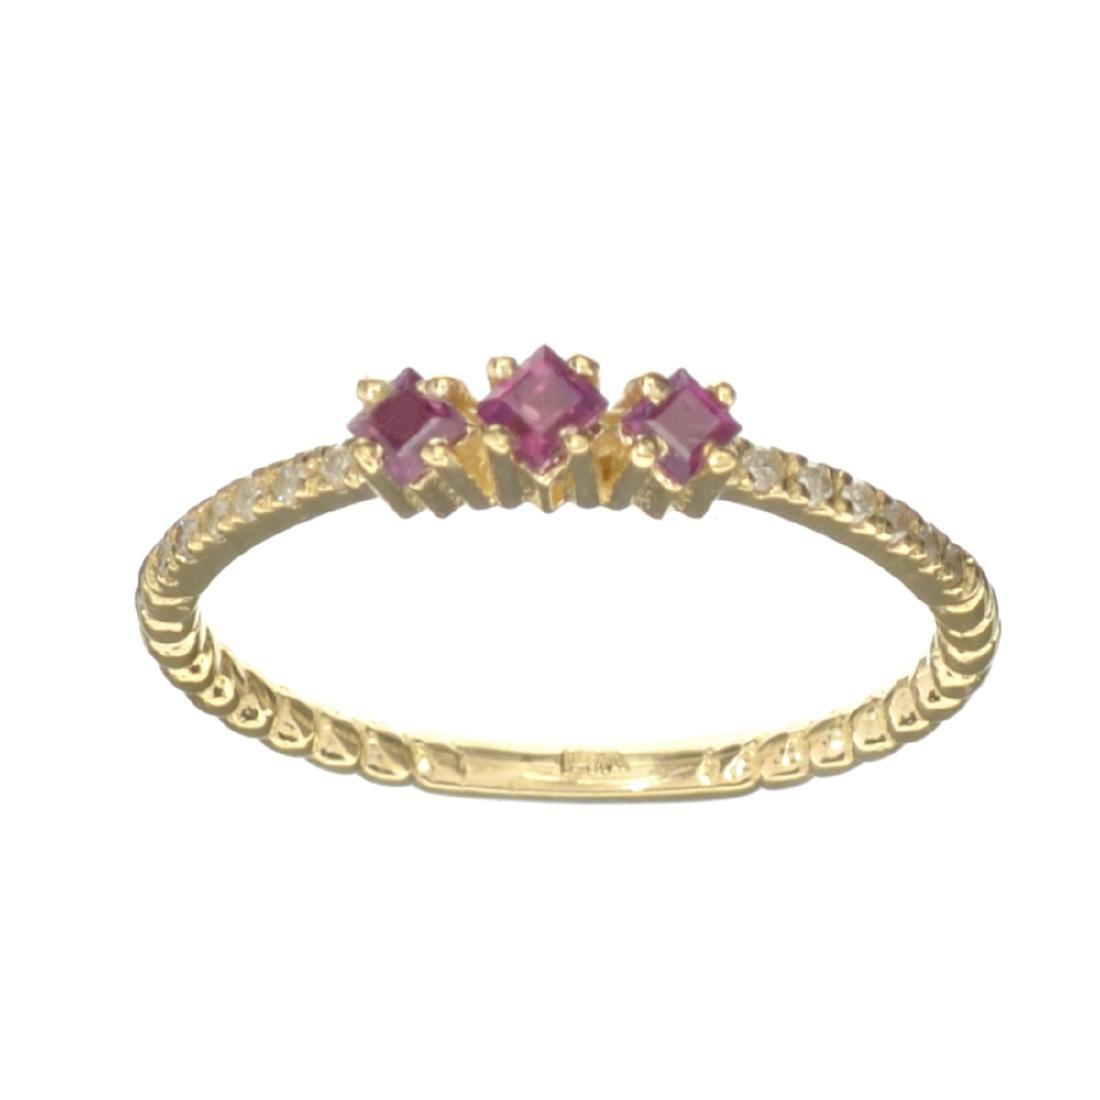 APP: 0.6k Fine Jewelry 14KT Gold, 0.24CT Ruby And